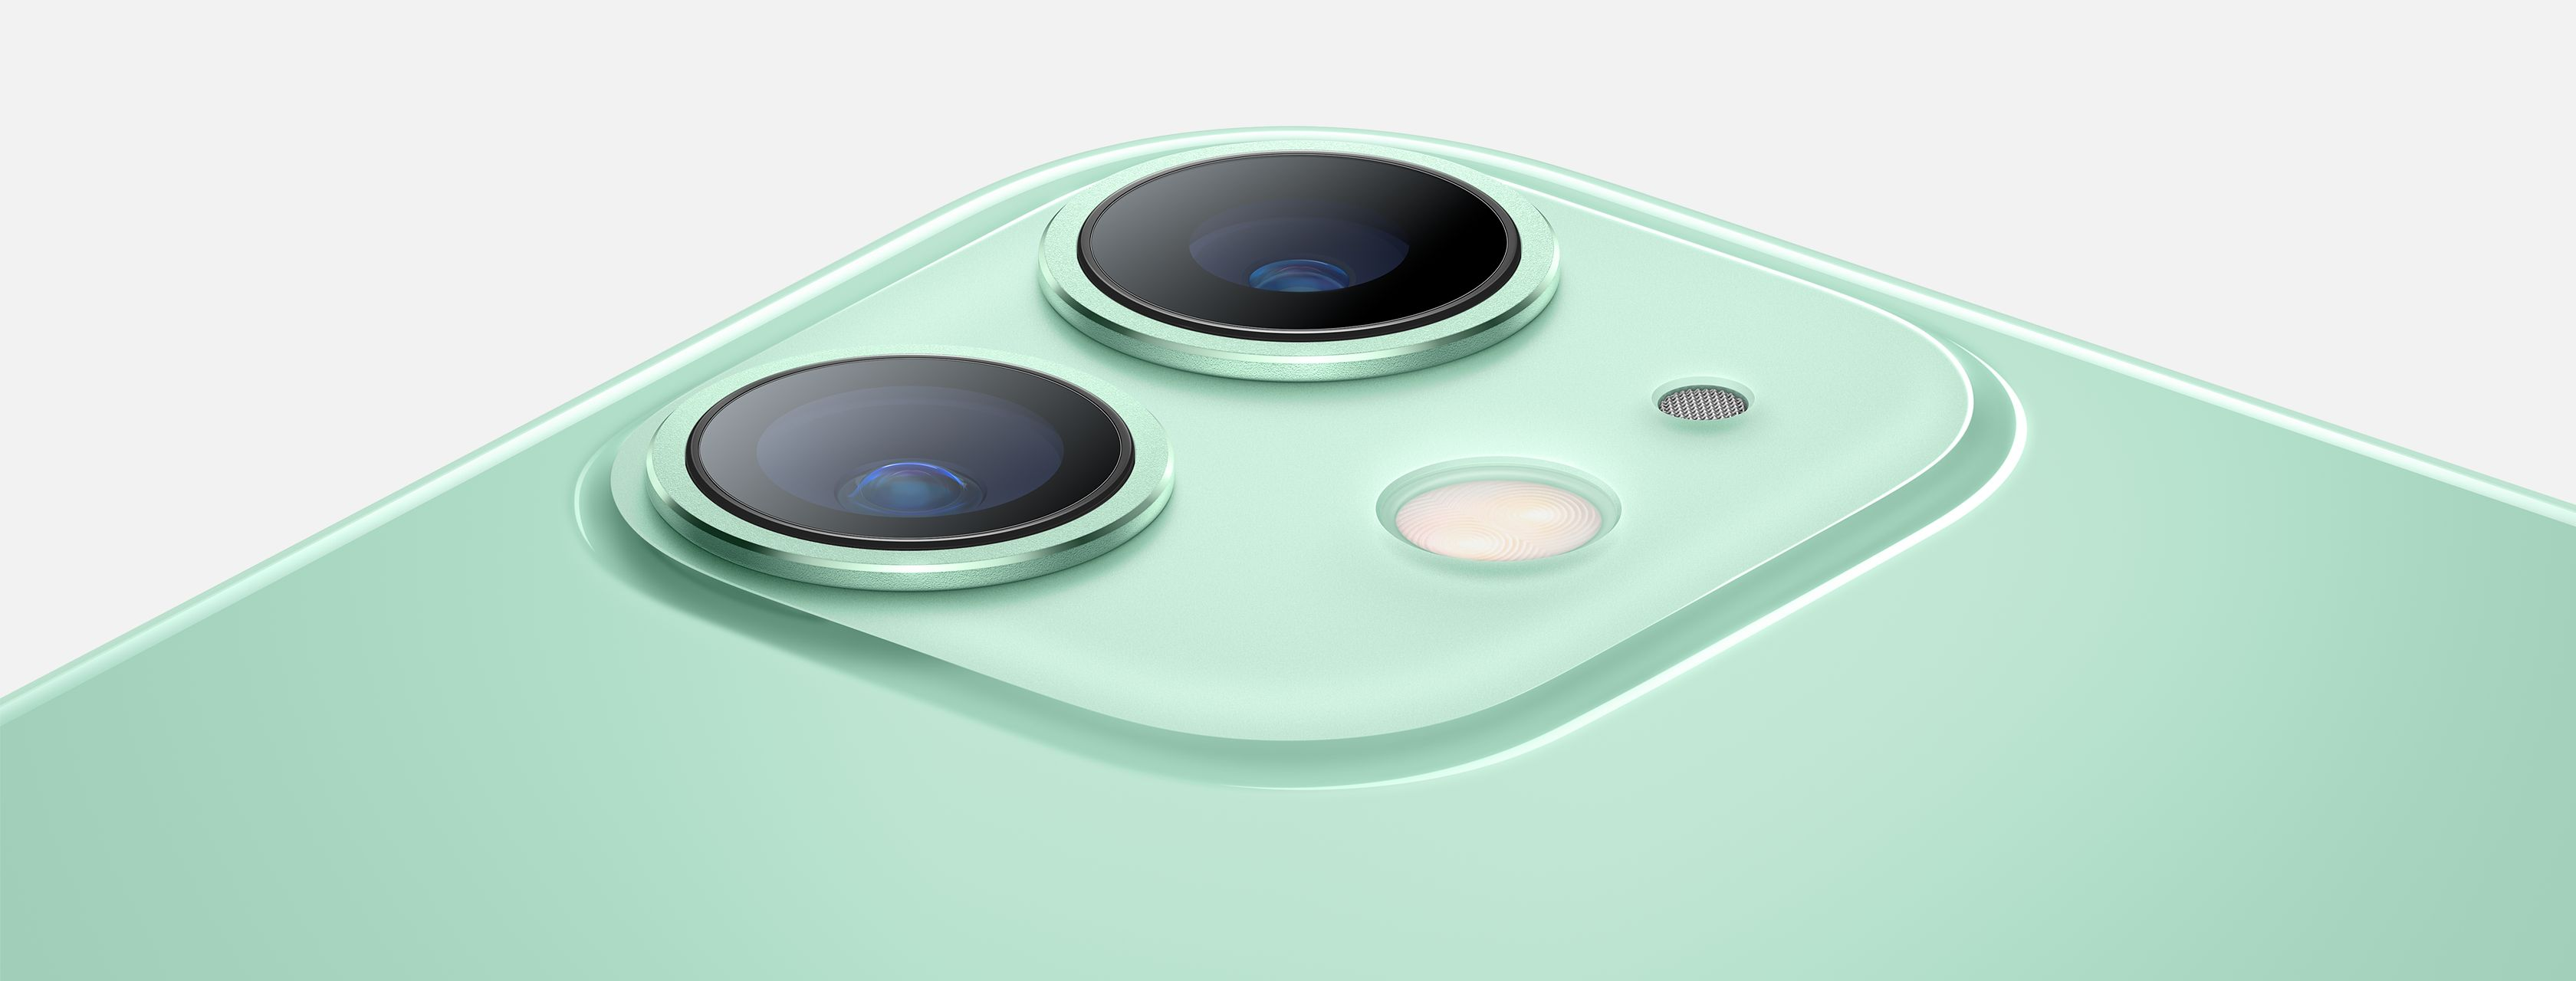 iphone 11 64 green